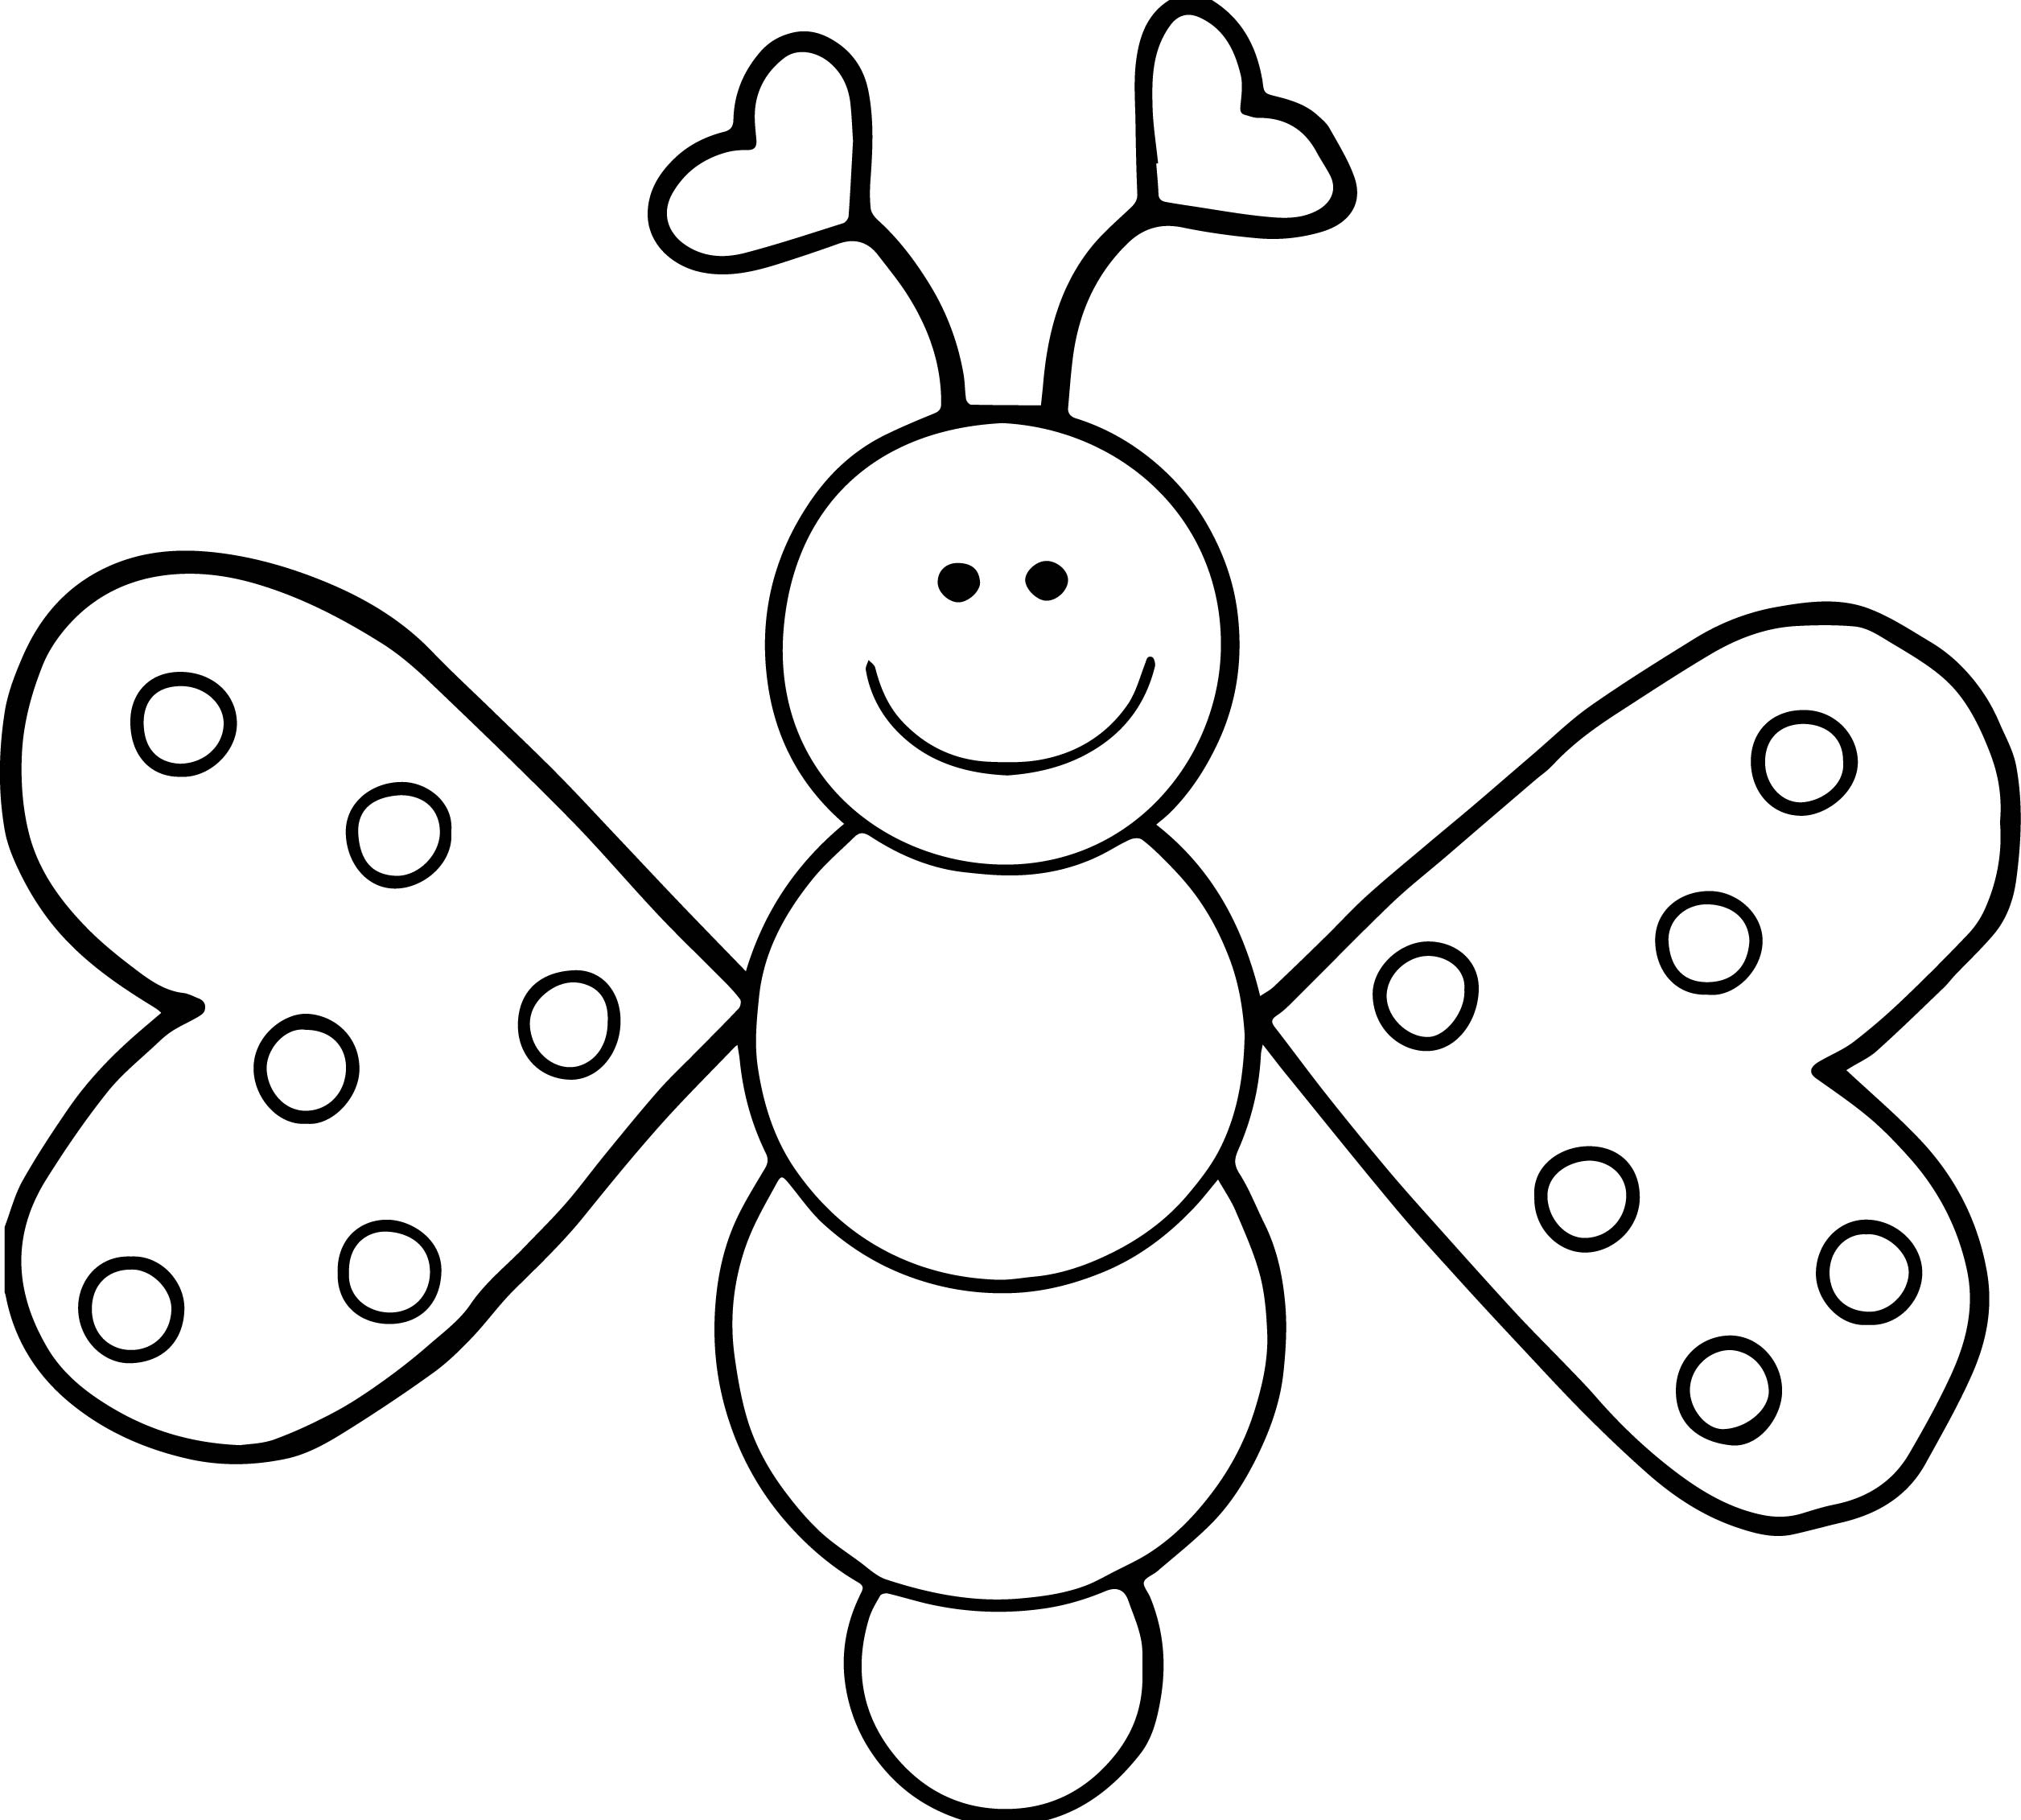 Cartoon Girl Butterfly Coloring Page Wecoloringpage Butterfly Coloring Pages